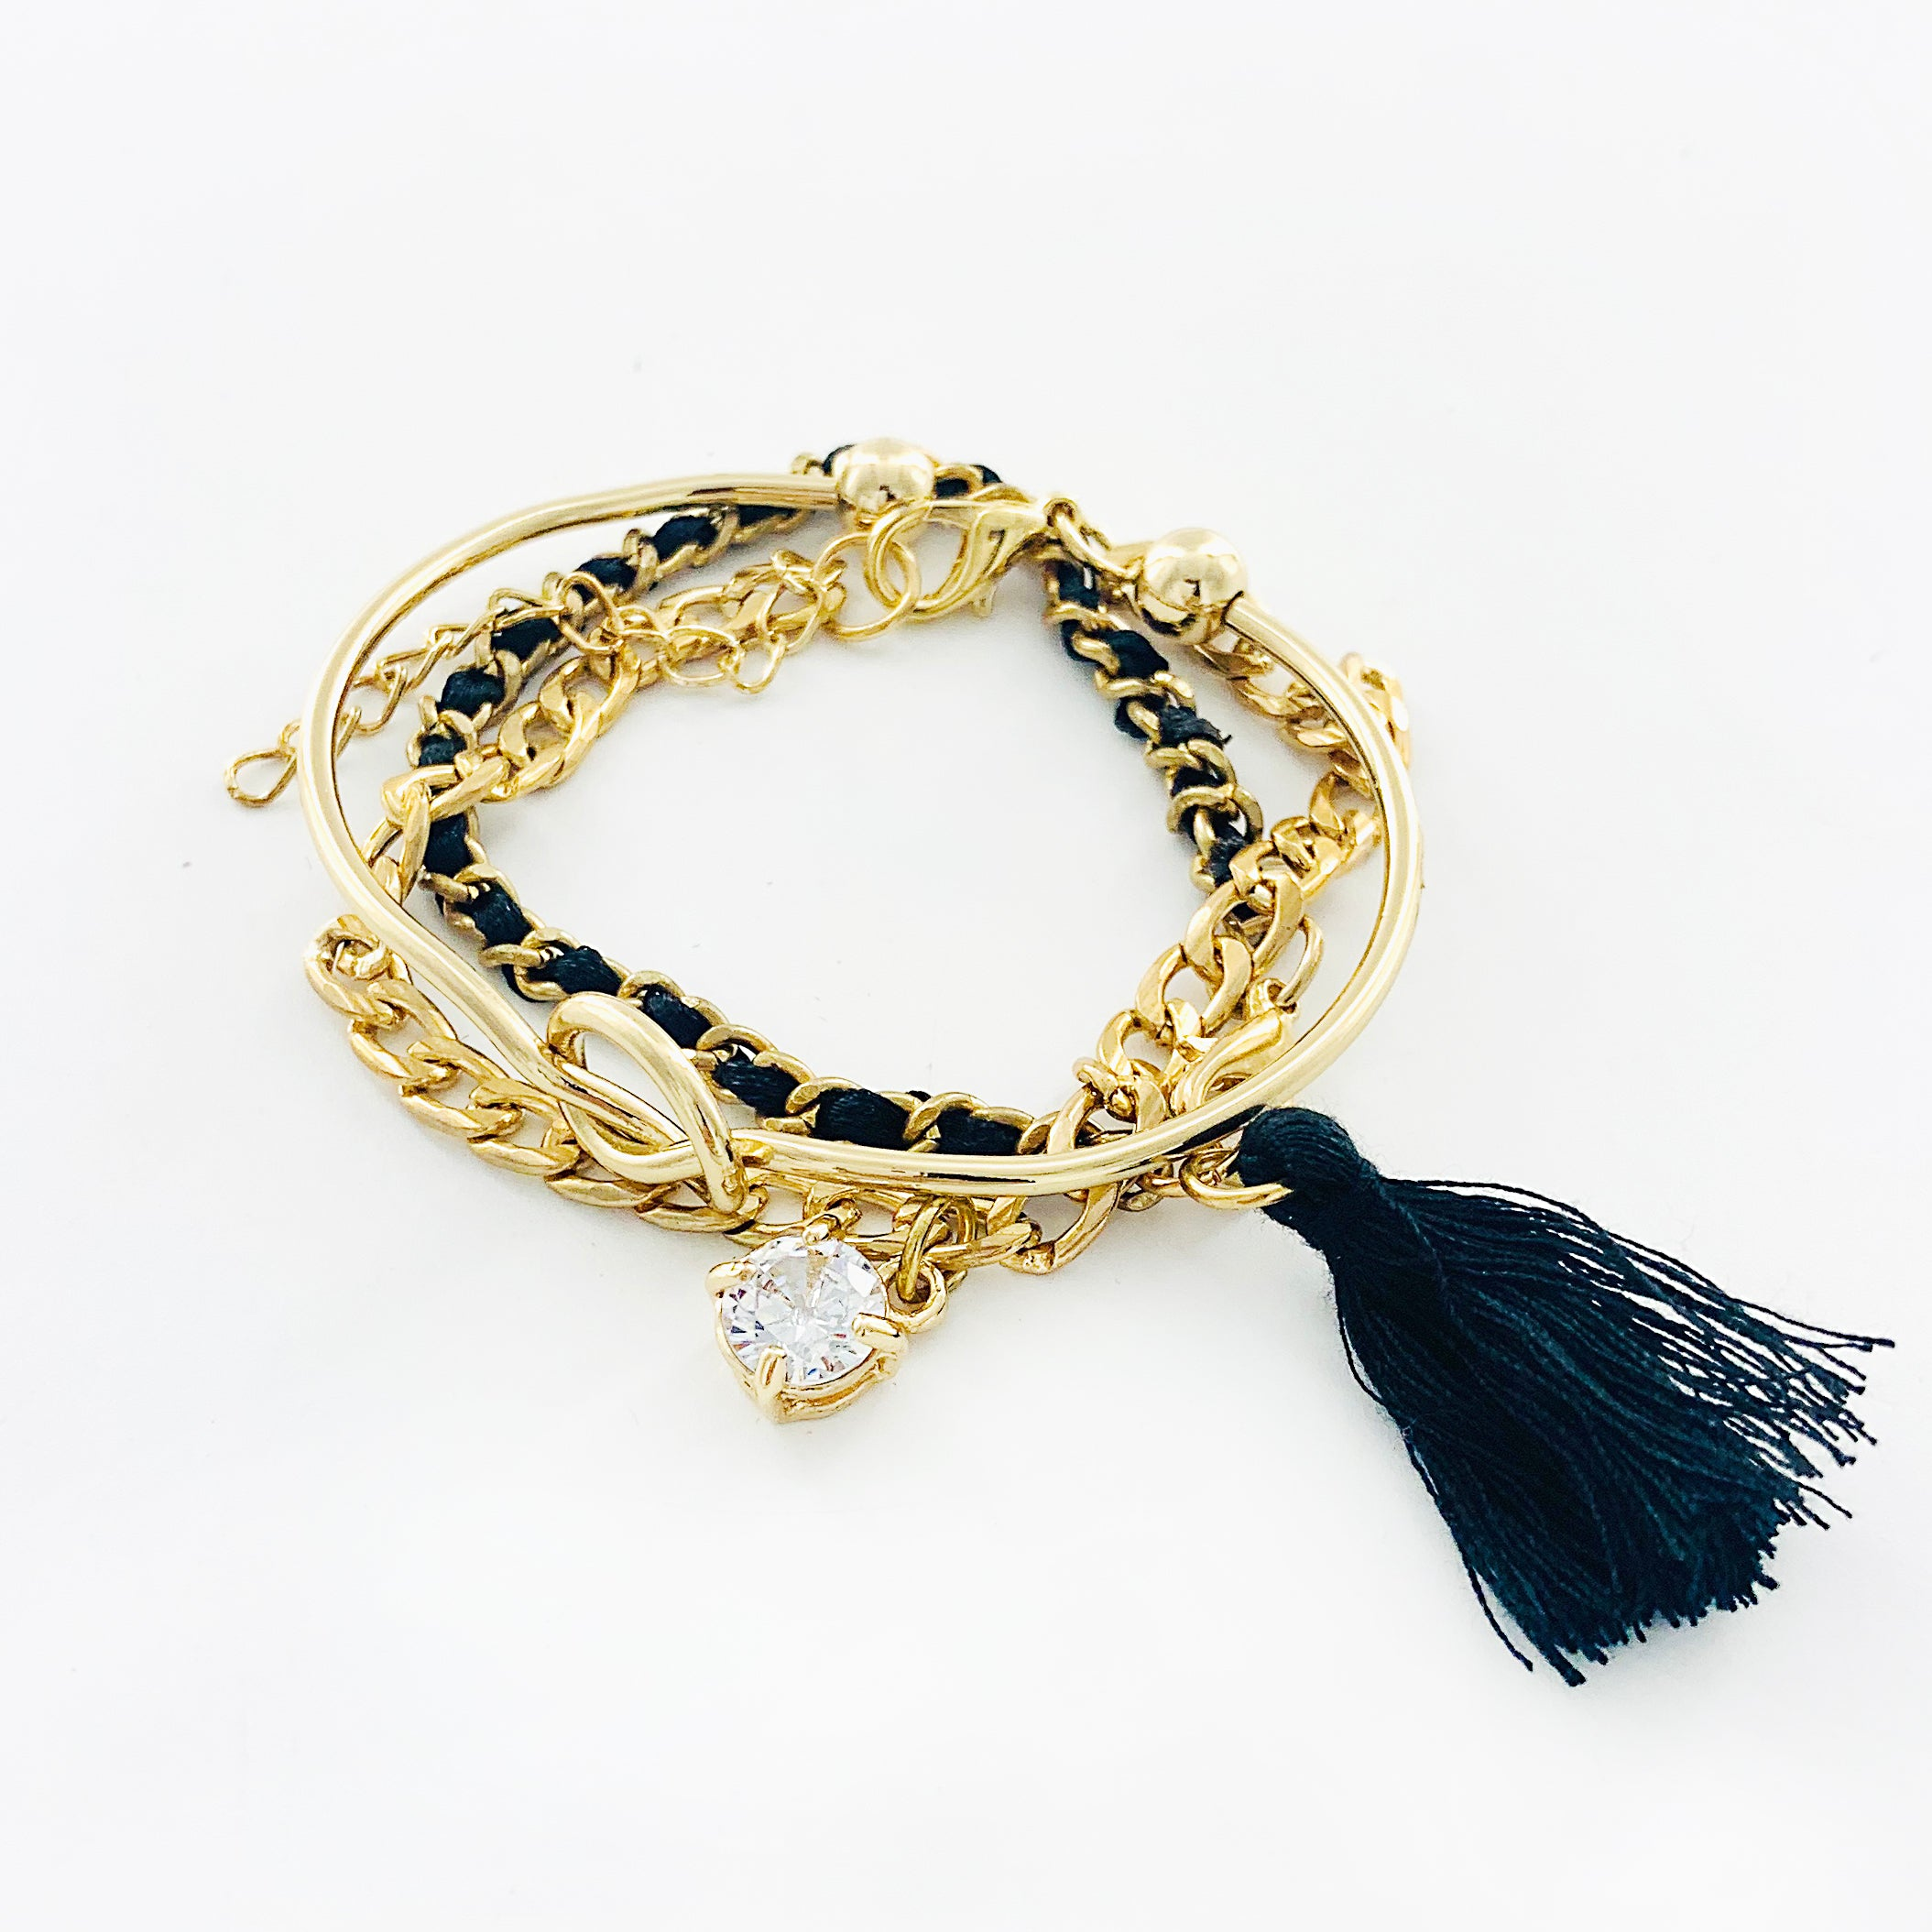 Black and gold multi bracelets with tassel and diamante charm